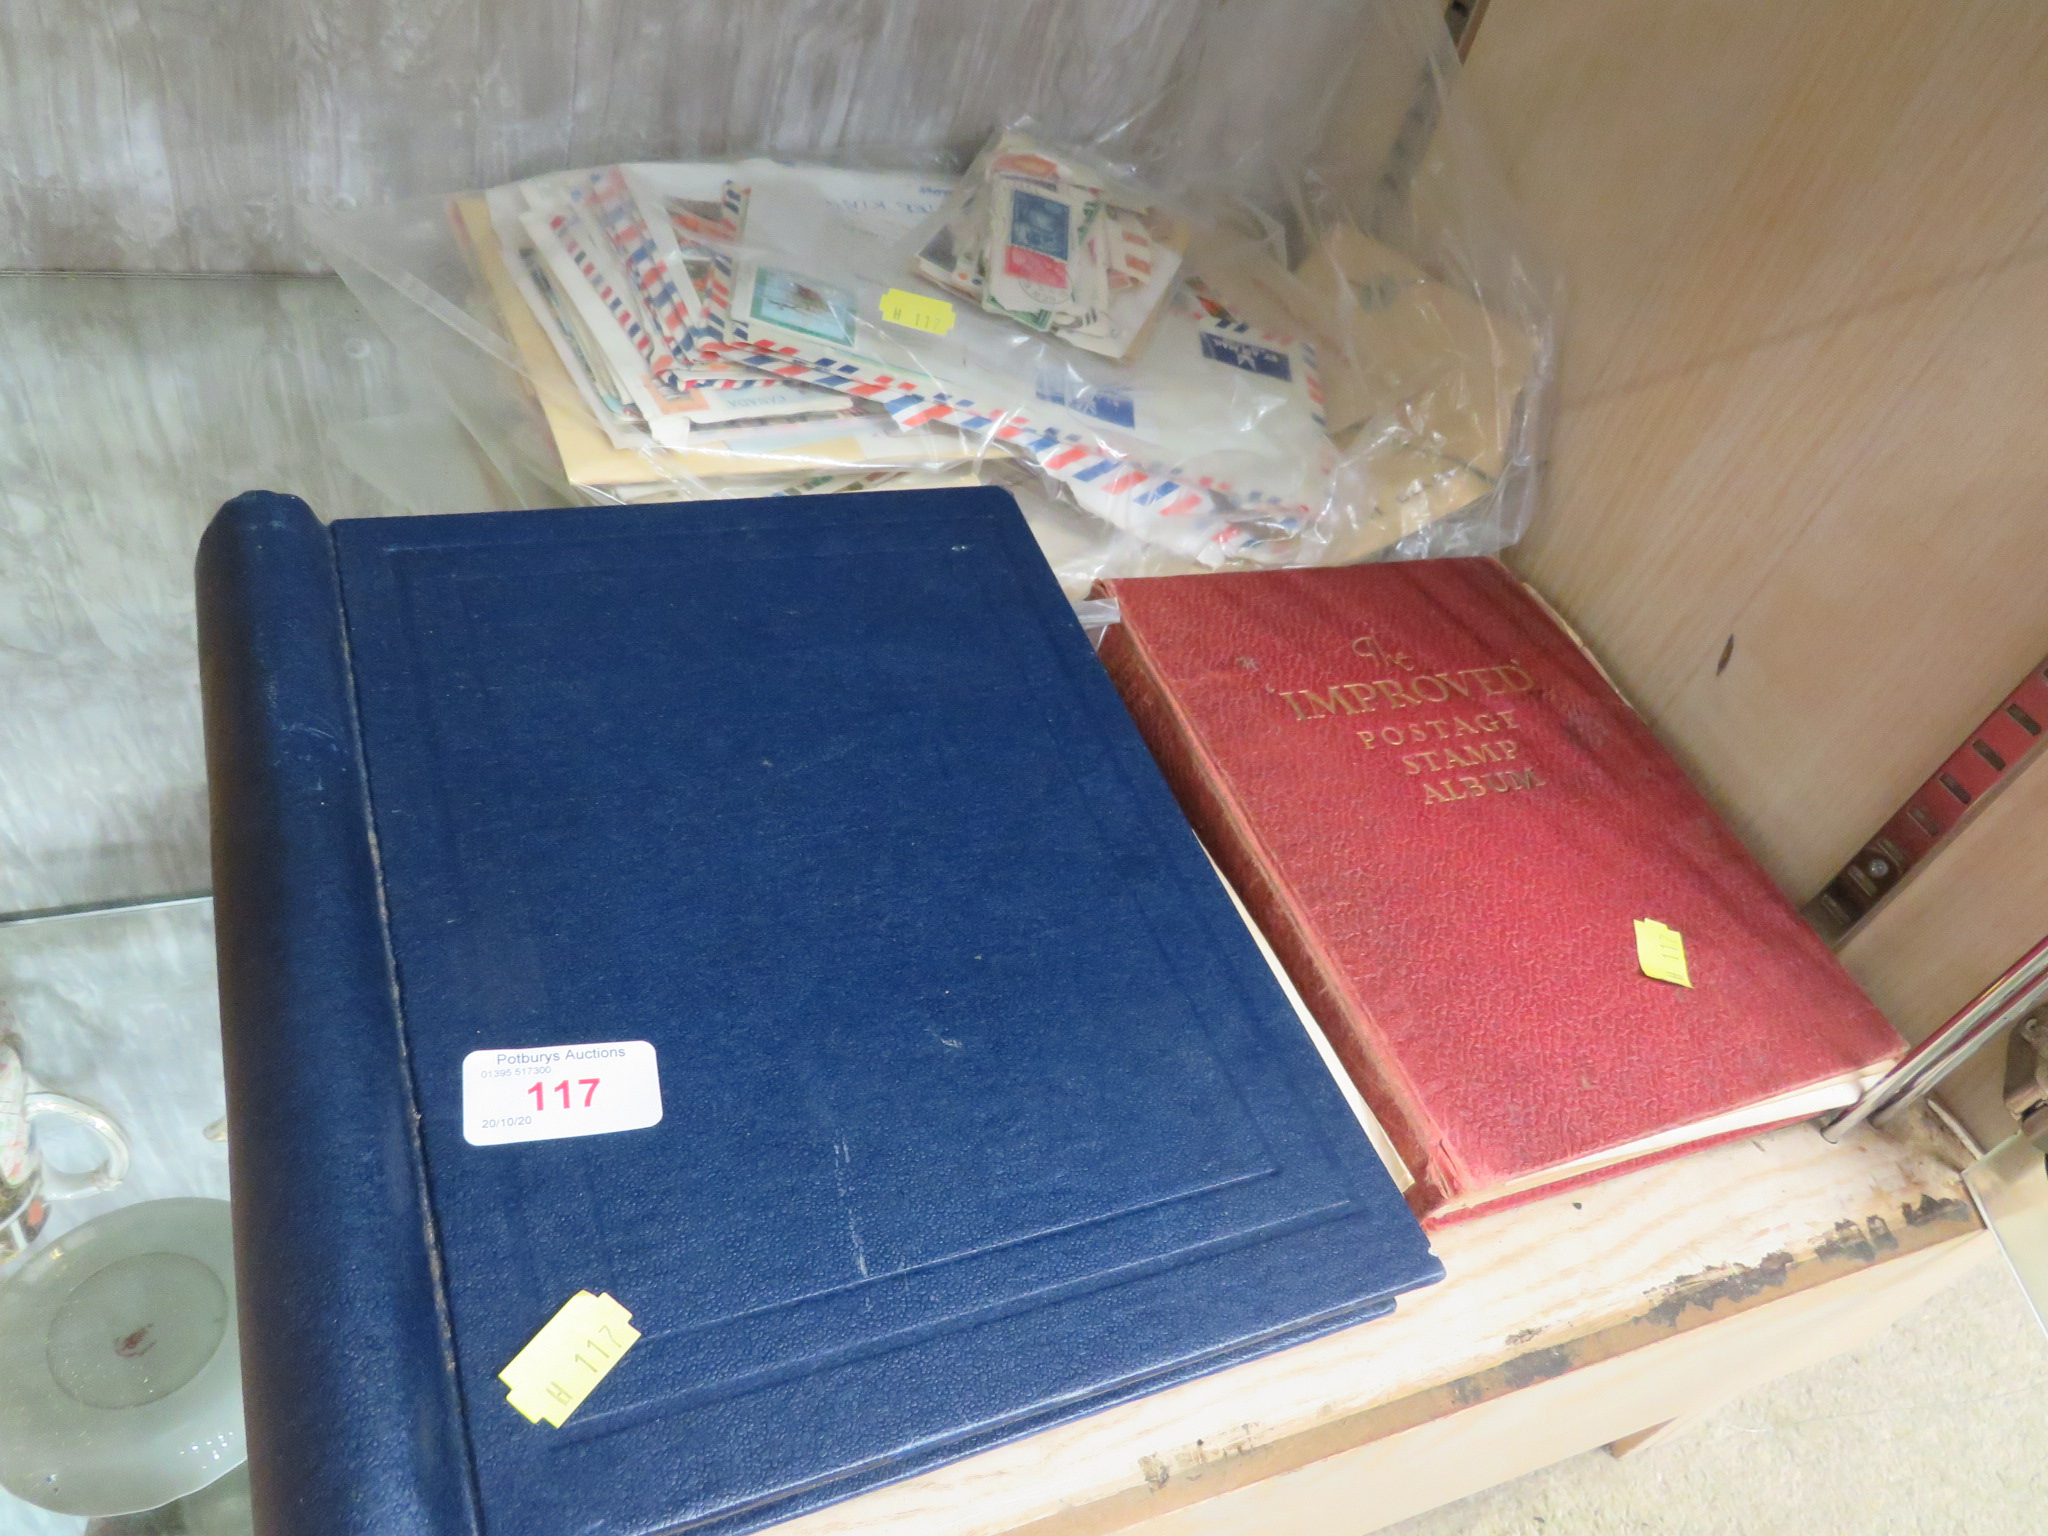 BLUE ZENITH STAMP ALBUM AND RED IMPROVED POSTAGE STAMP ALBUM WITH CONTENTS, TOGETHER WITH COVERS AND